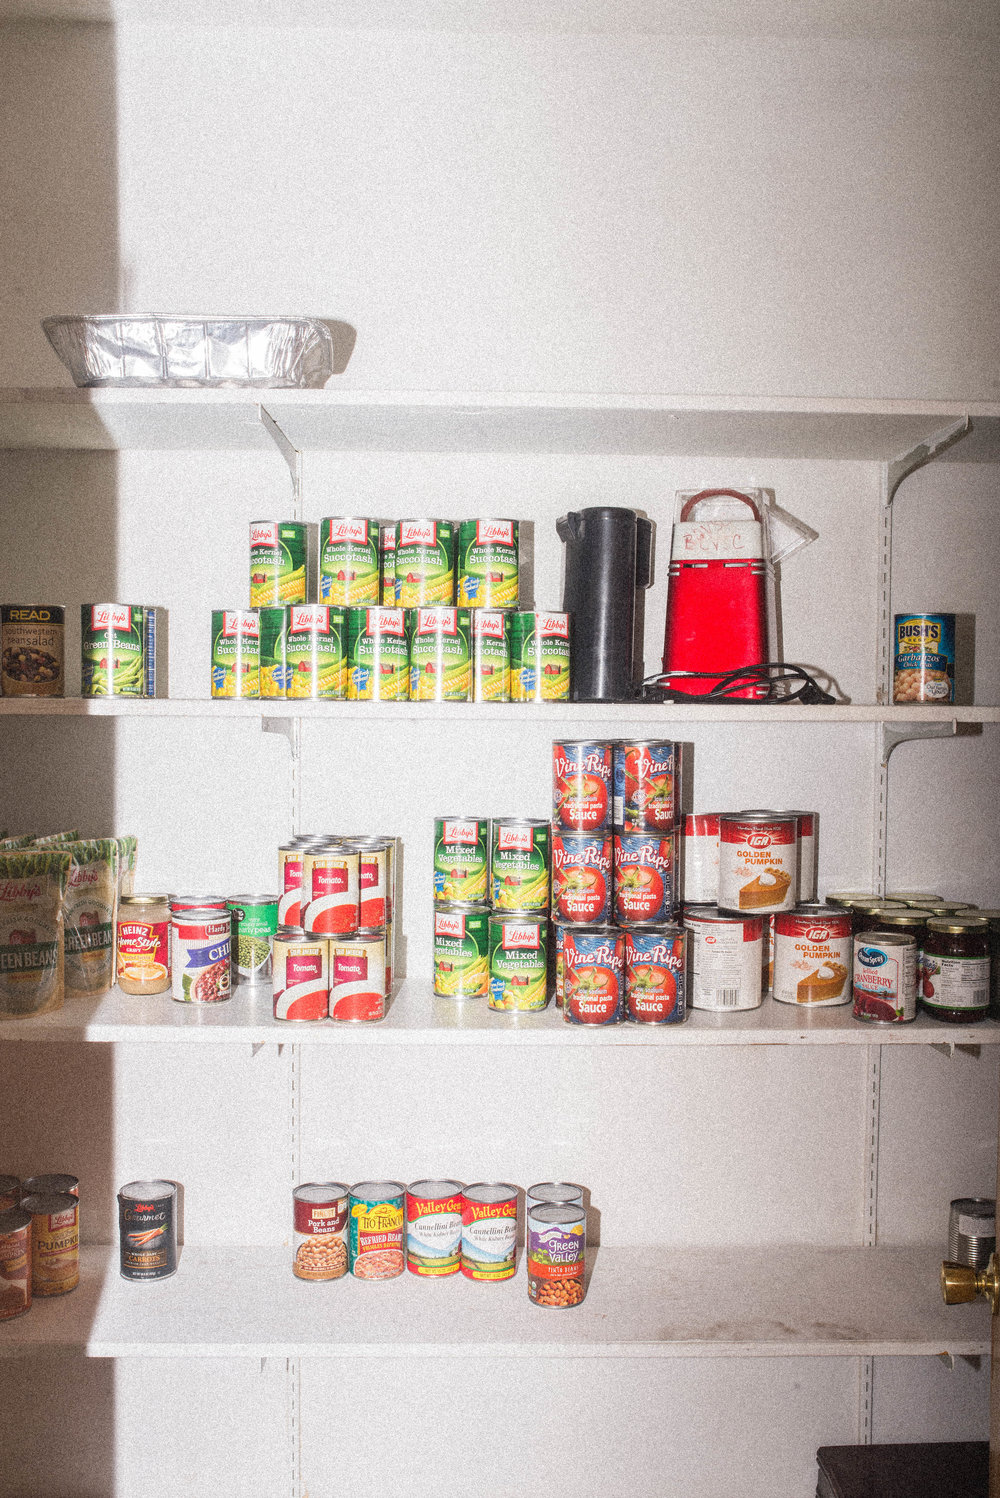 Shelter pantry. October 2017.